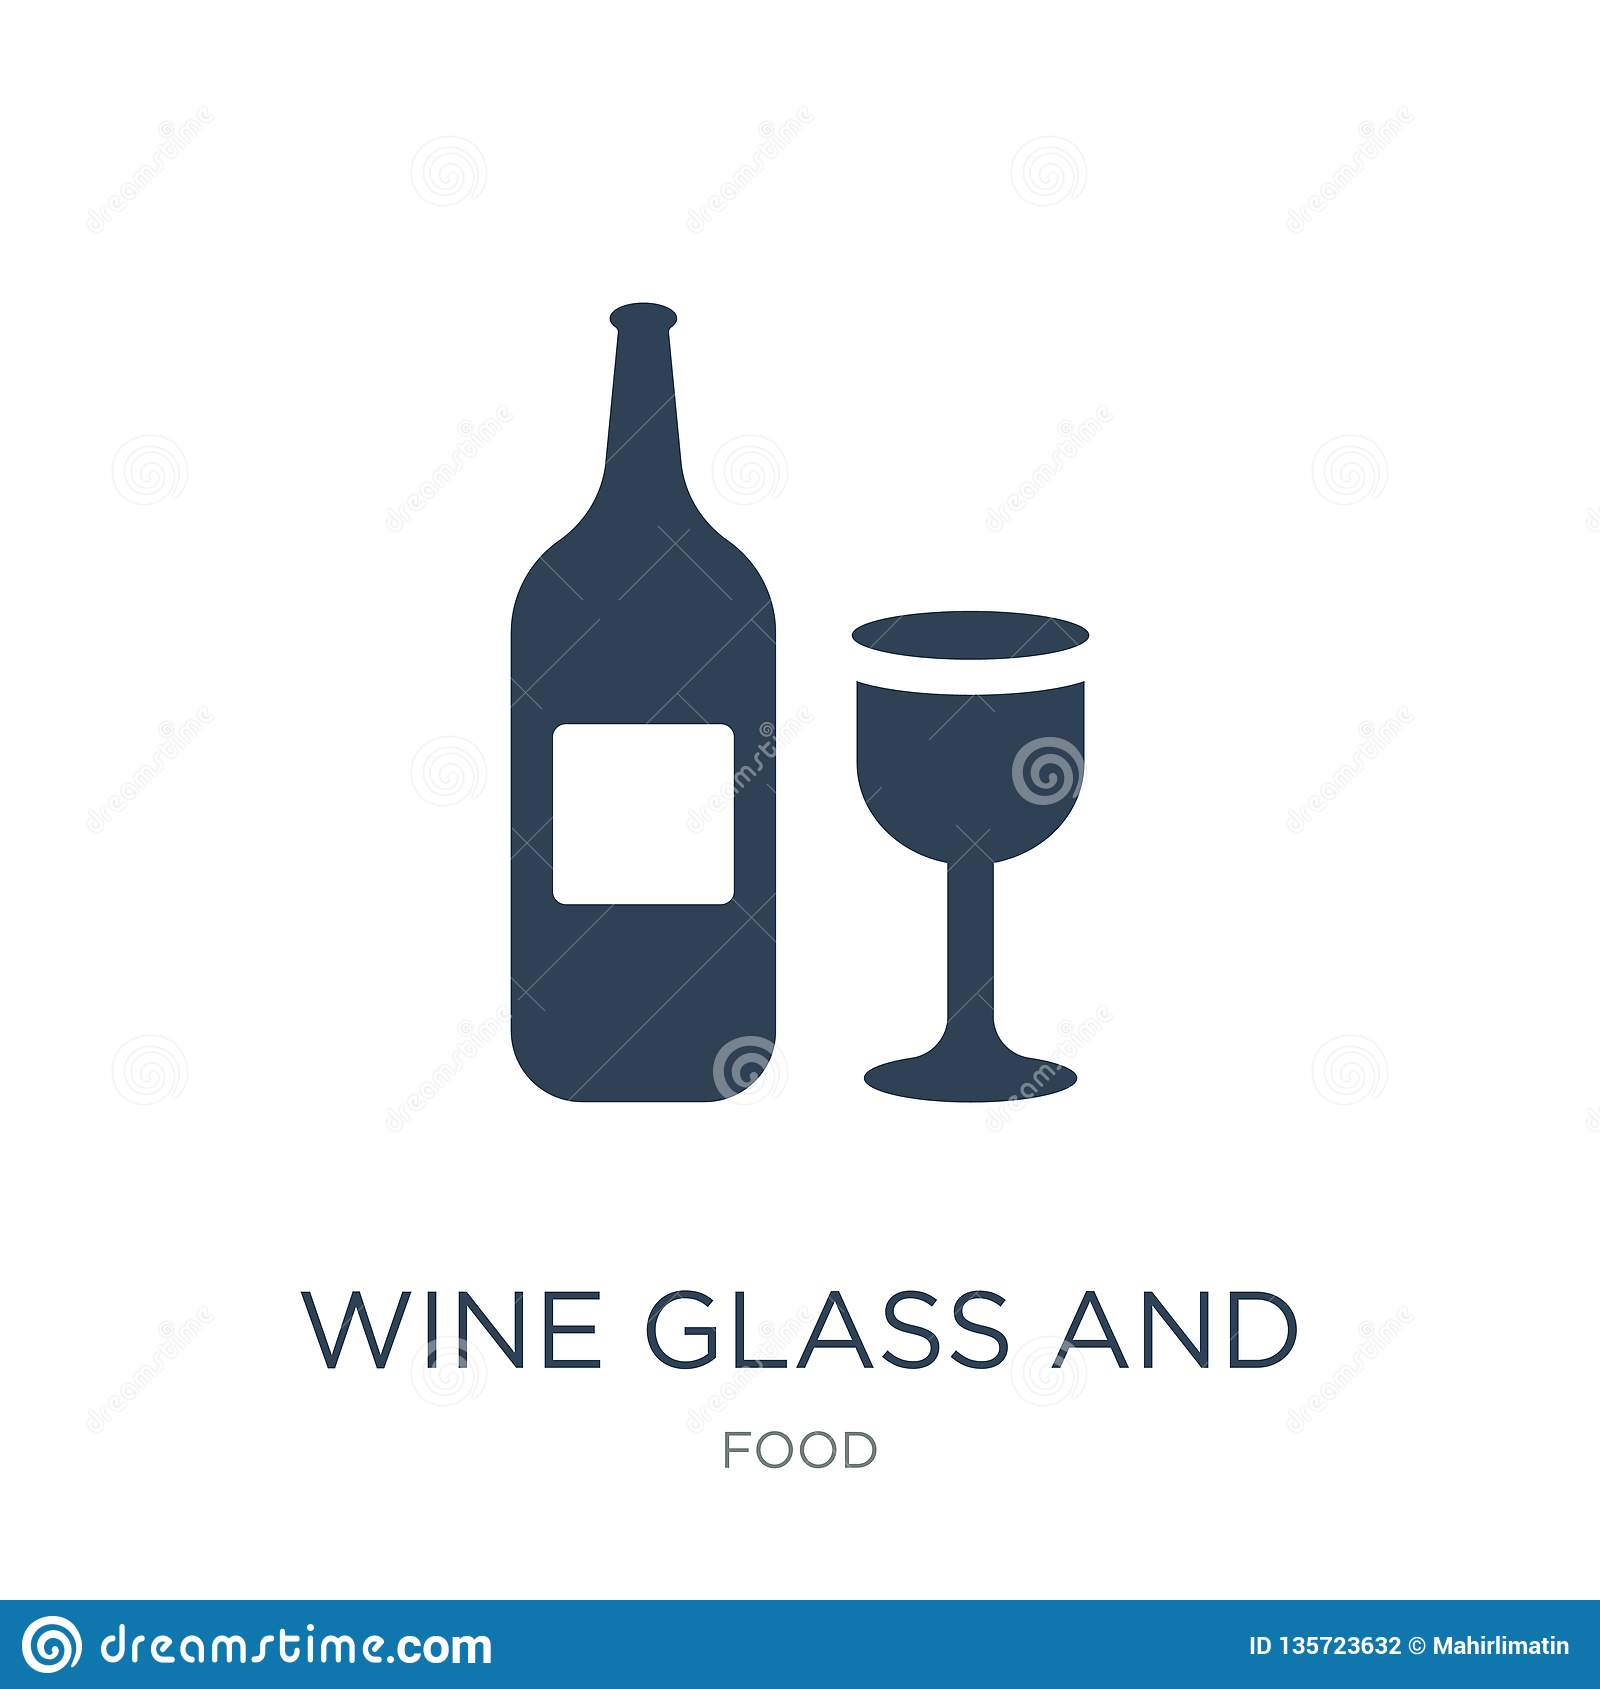 wine glass and bottle icon in trendy design style. wine glass and bottle icon isolated on white background. wine glass and bottle